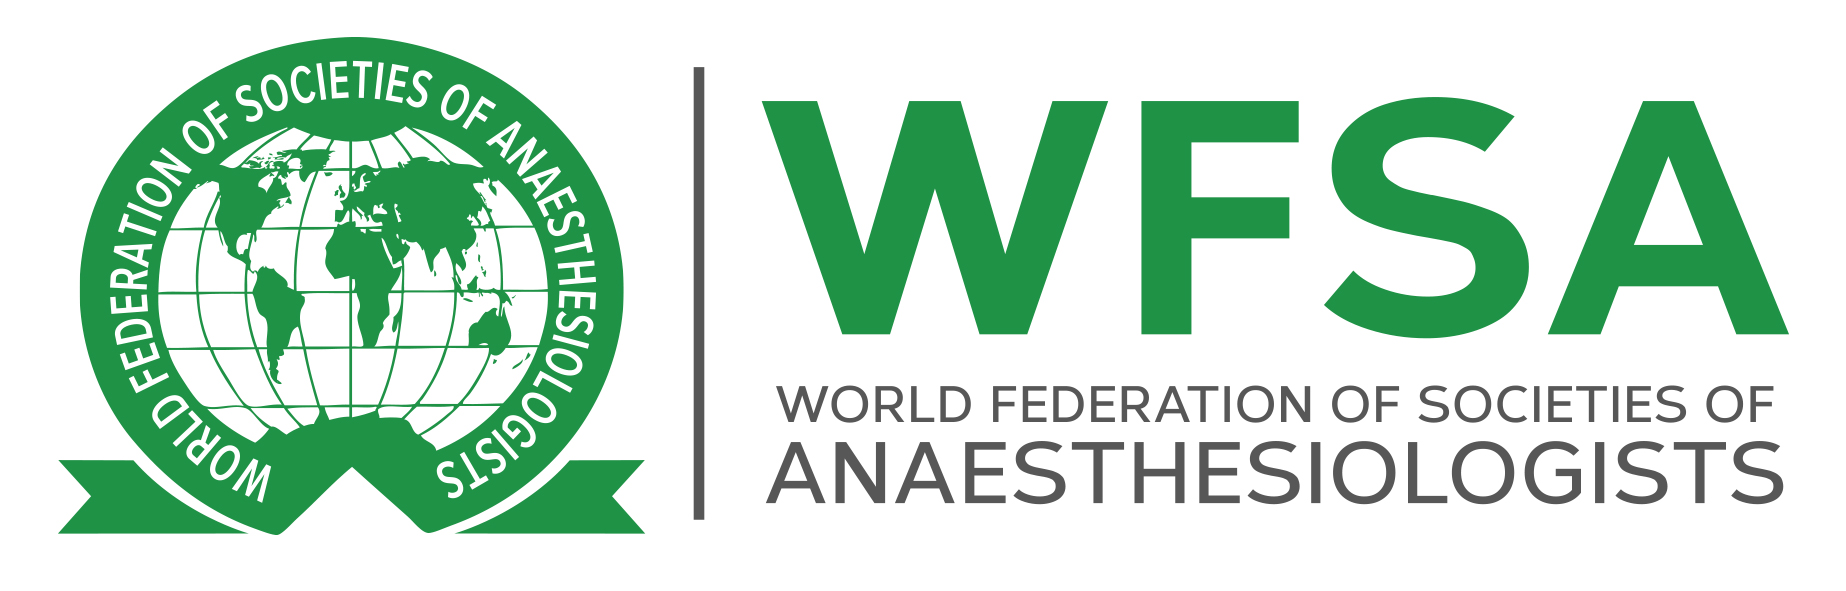 WCA 2020 - 17th World Congress of Anaesthesiologists